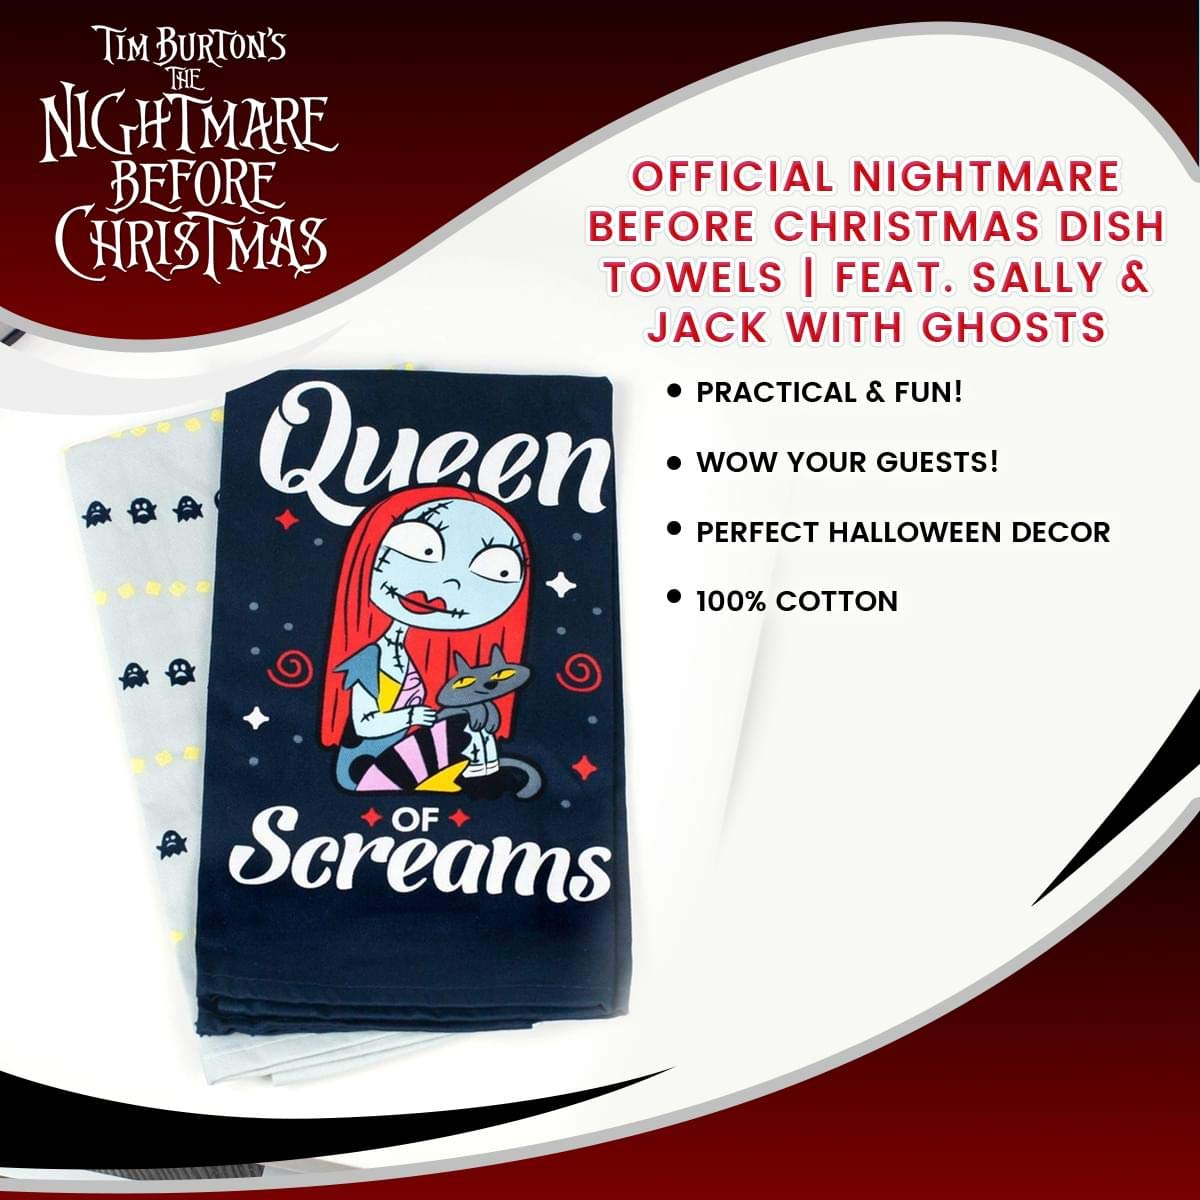 Sally /& Jack with Ghosts Nightmare before Christmas Official Dish Towels Feat